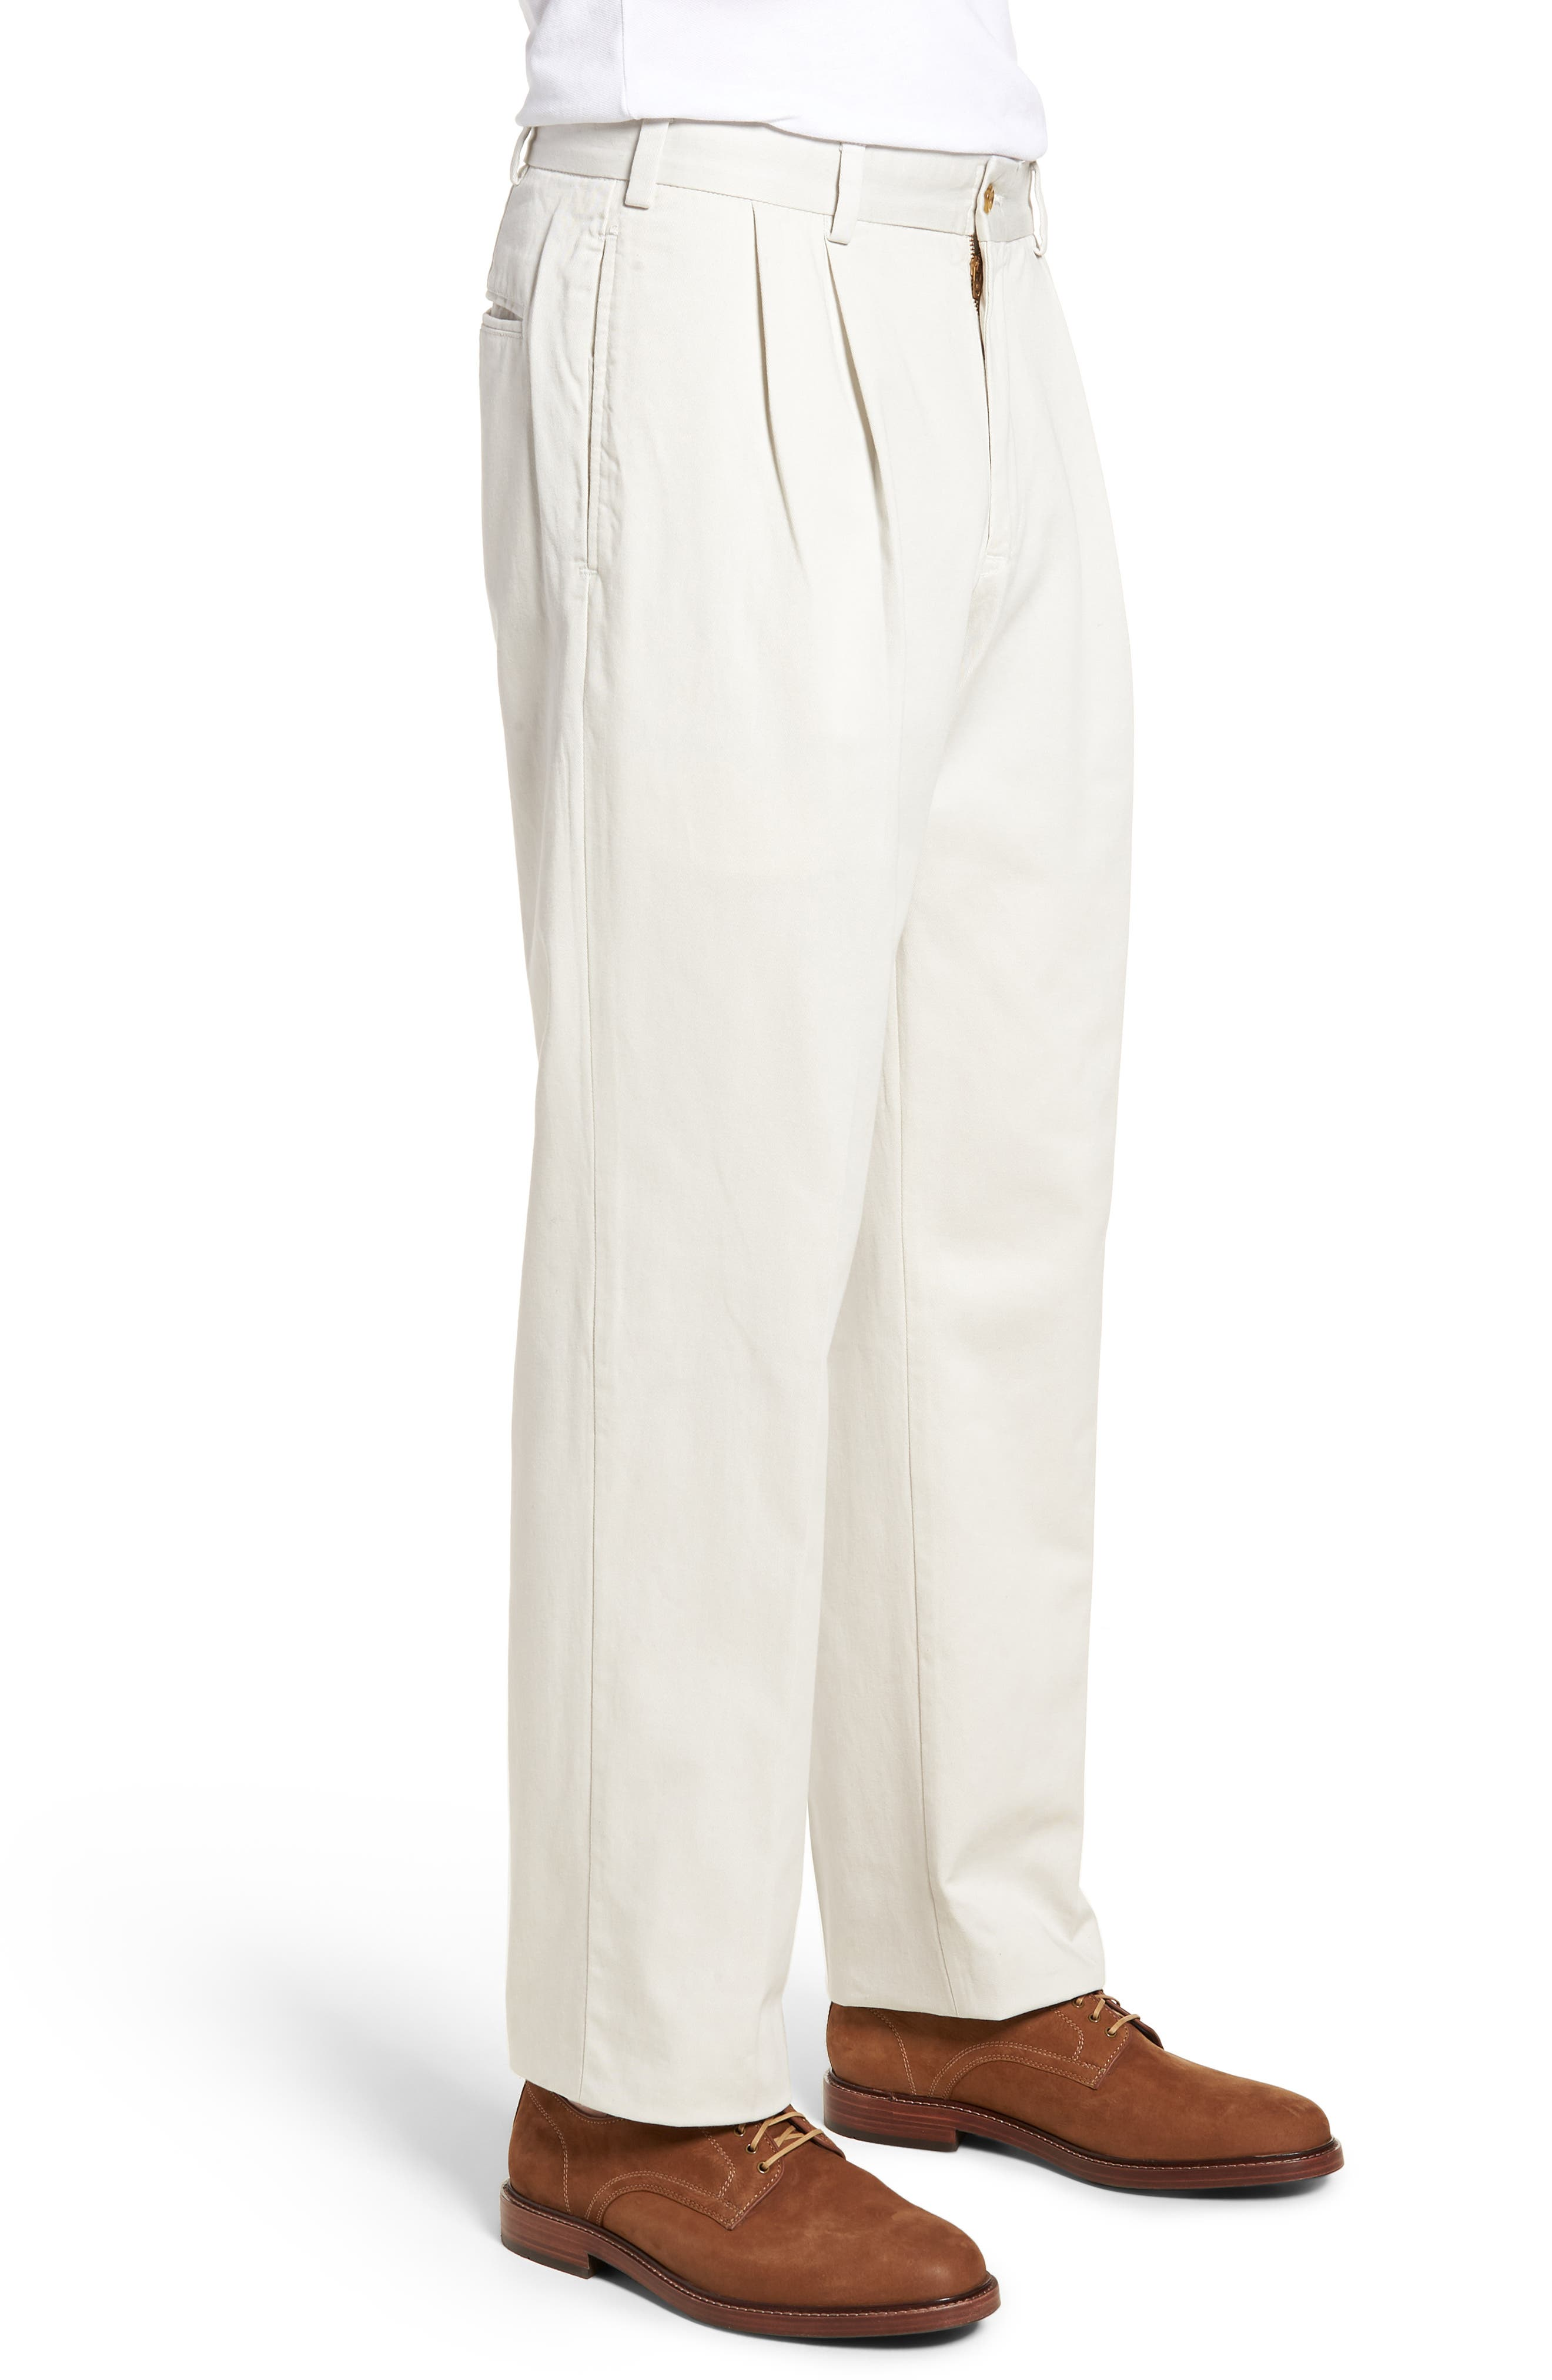 M2 Classic Fit Vintage Twill Pleated Pants,                             Alternate thumbnail 3, color,                             270